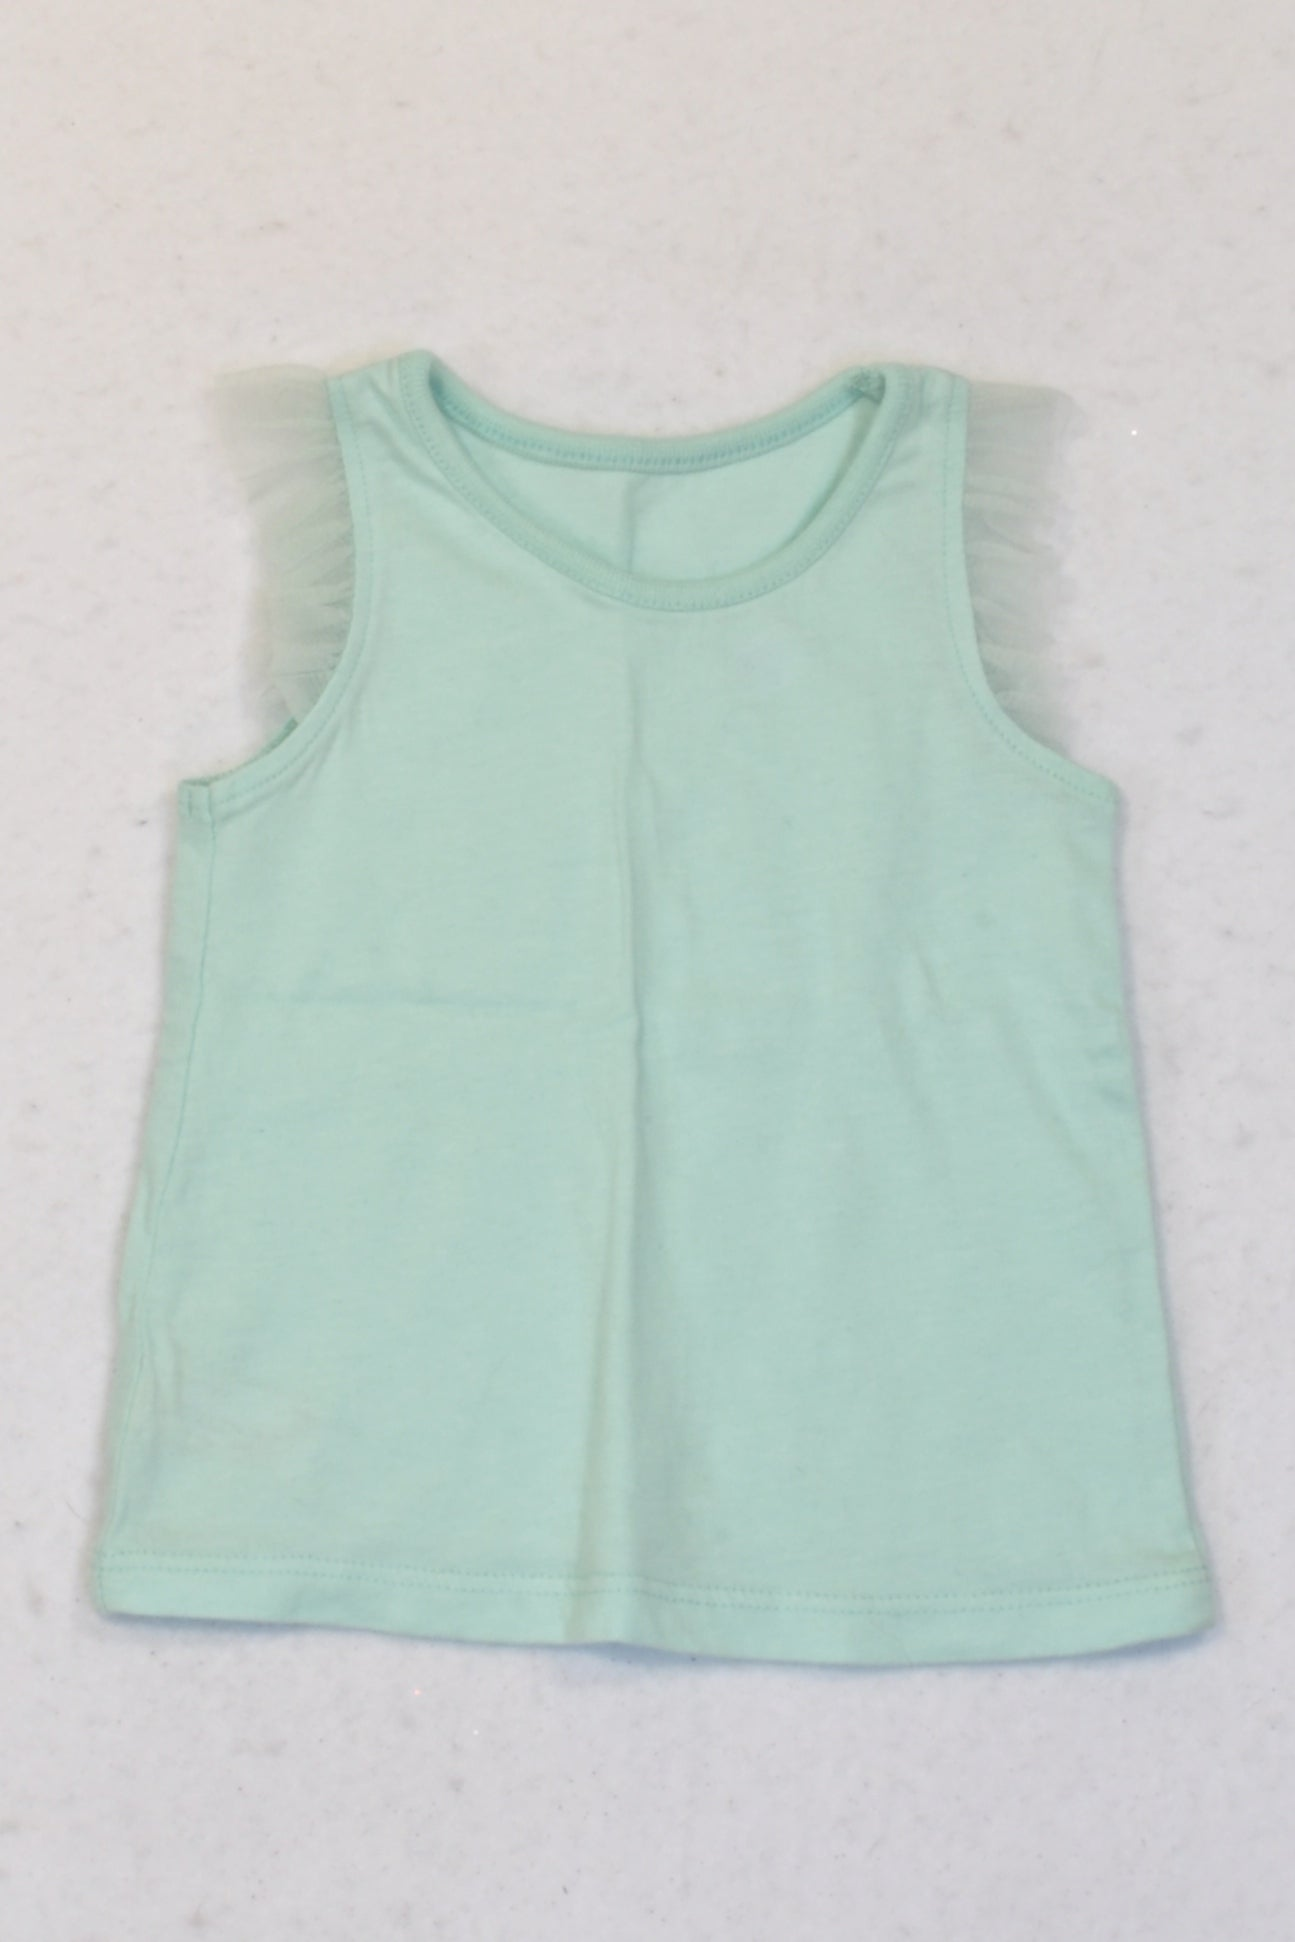 Woolworths Mint Tulle Trim Tank Top Girls 0-3 months